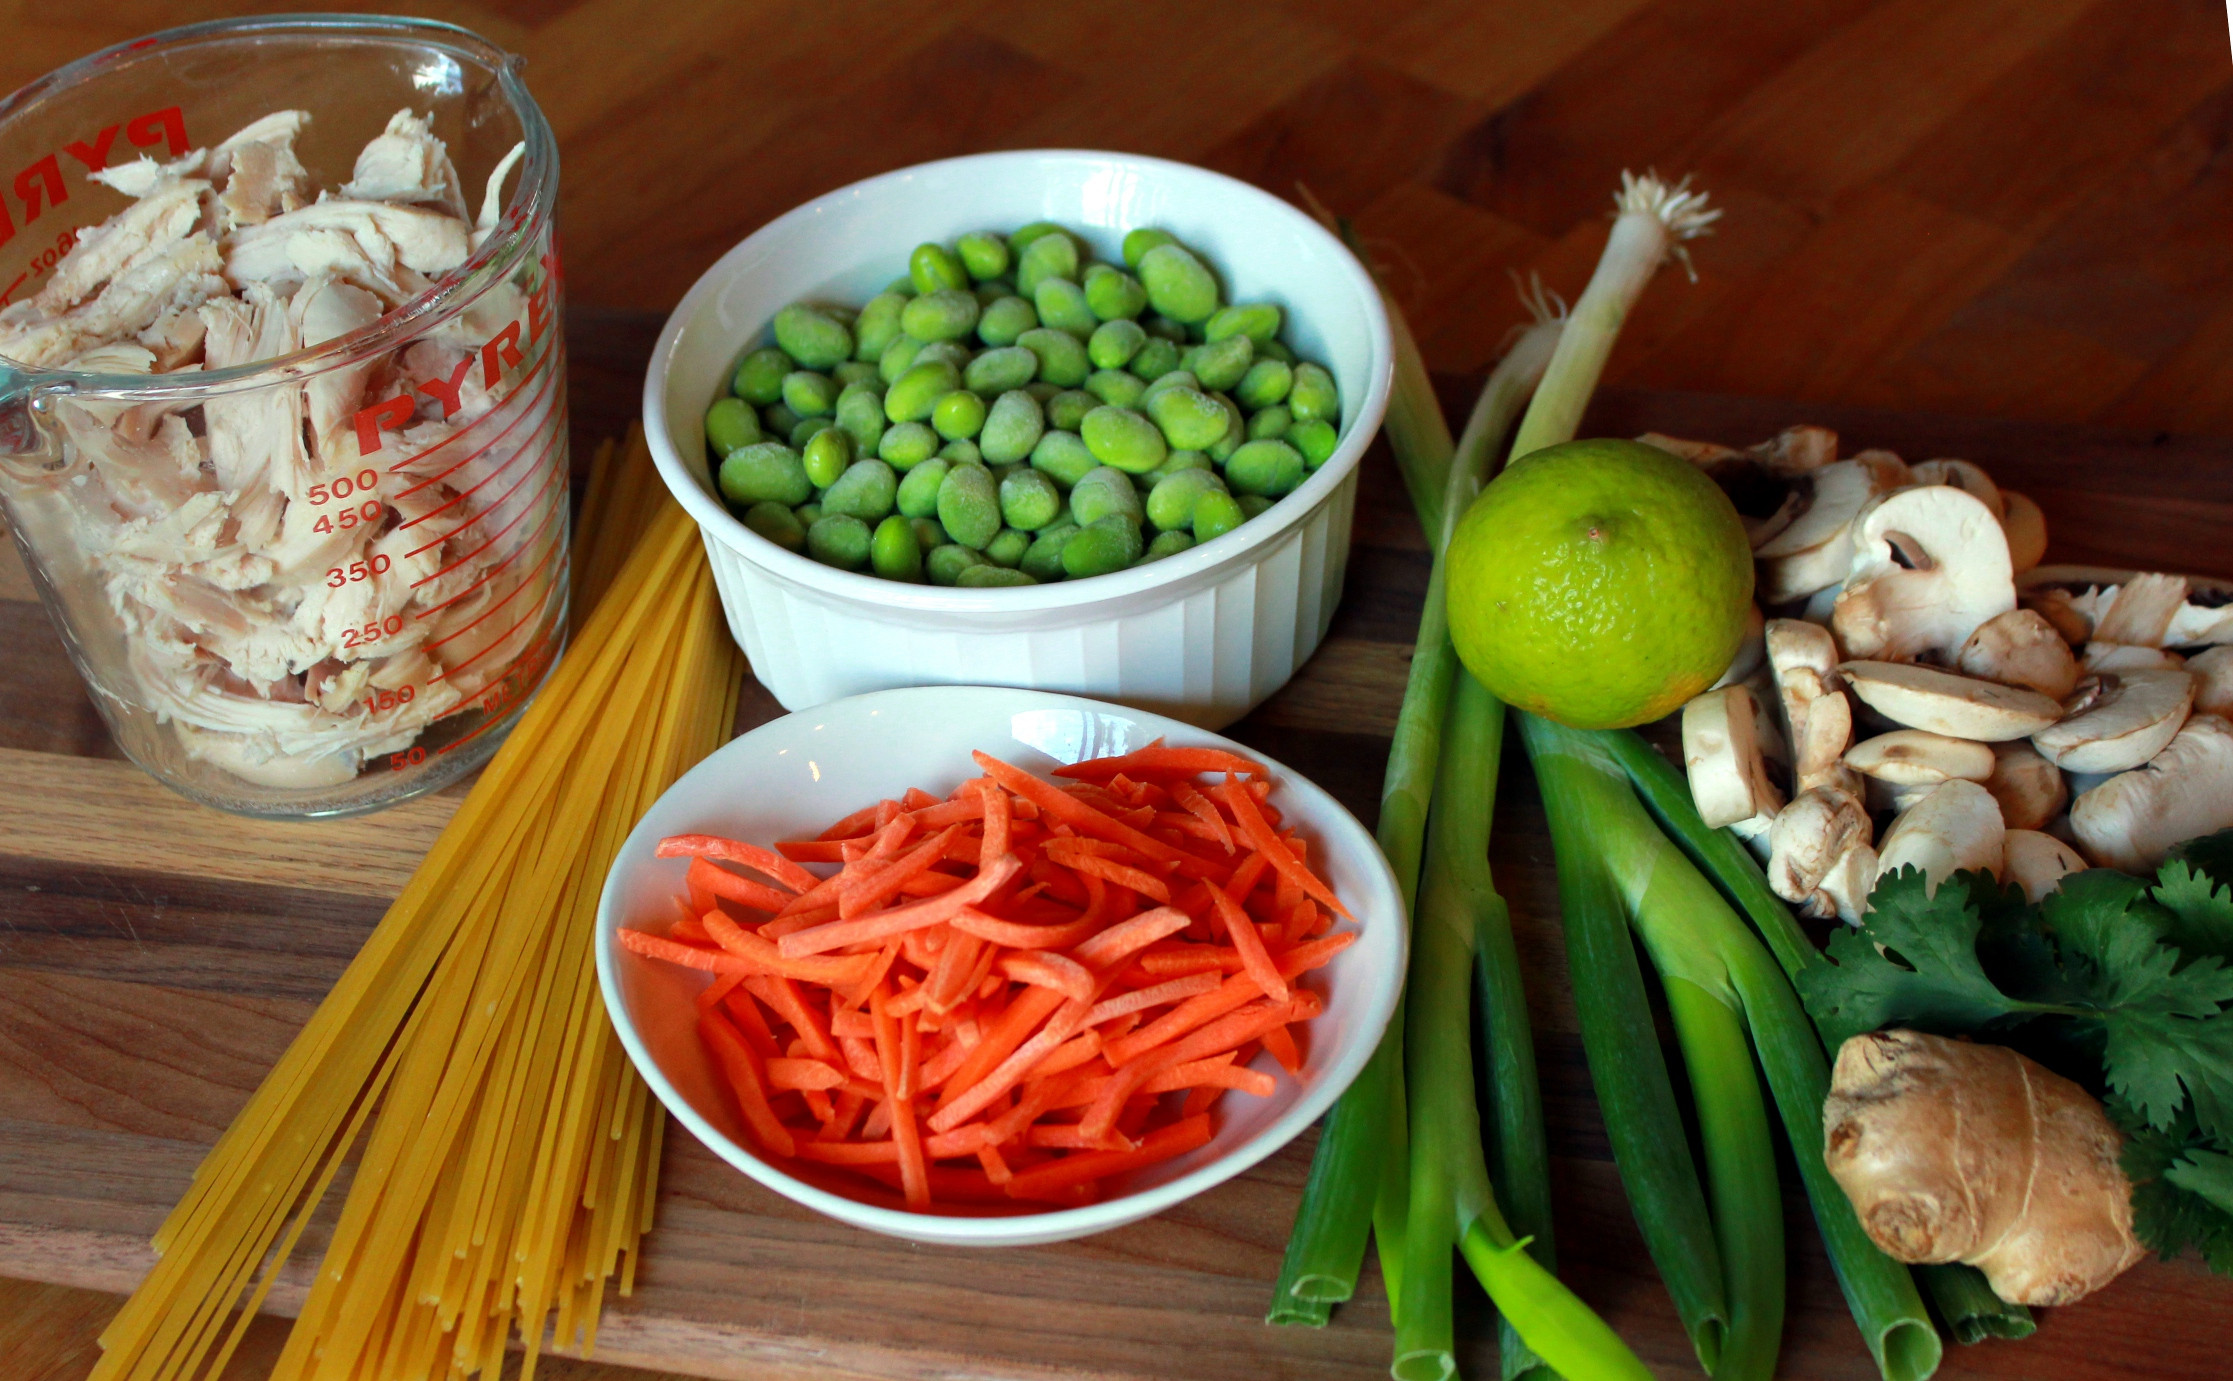 Chicken Noodle Soup Ingredients  Asian Chicken Noodle Soup with Edamame Mushrooms and